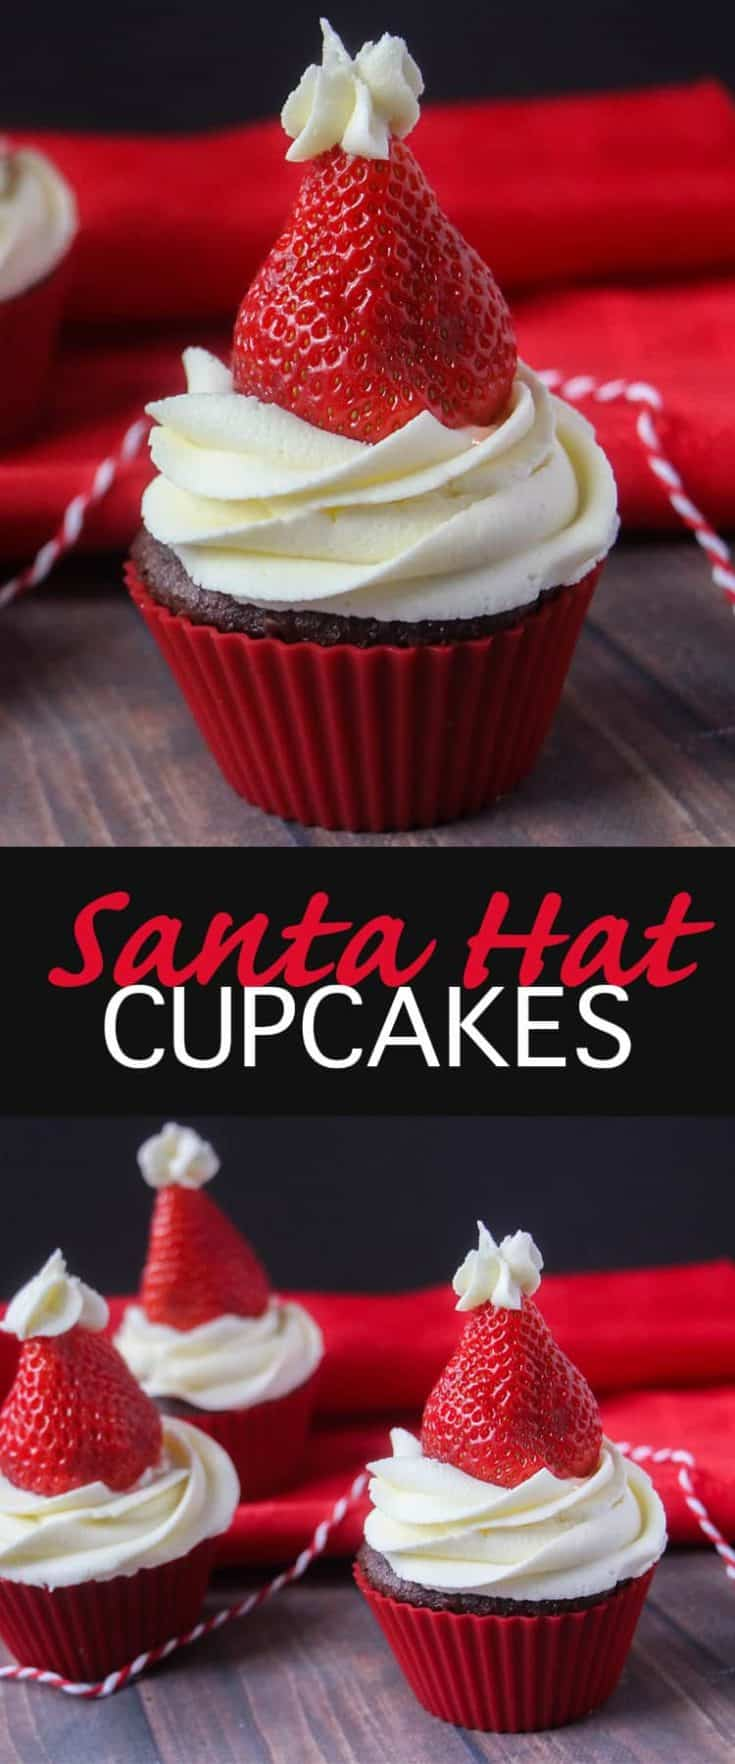 Easy and simple Santa Hat Cupcakes are made with strawberries and a yummy classic vanilla buttercream frosting. Such a festive holiday cupcake recipe! #cupcakes #christmas #santahatcupcakes